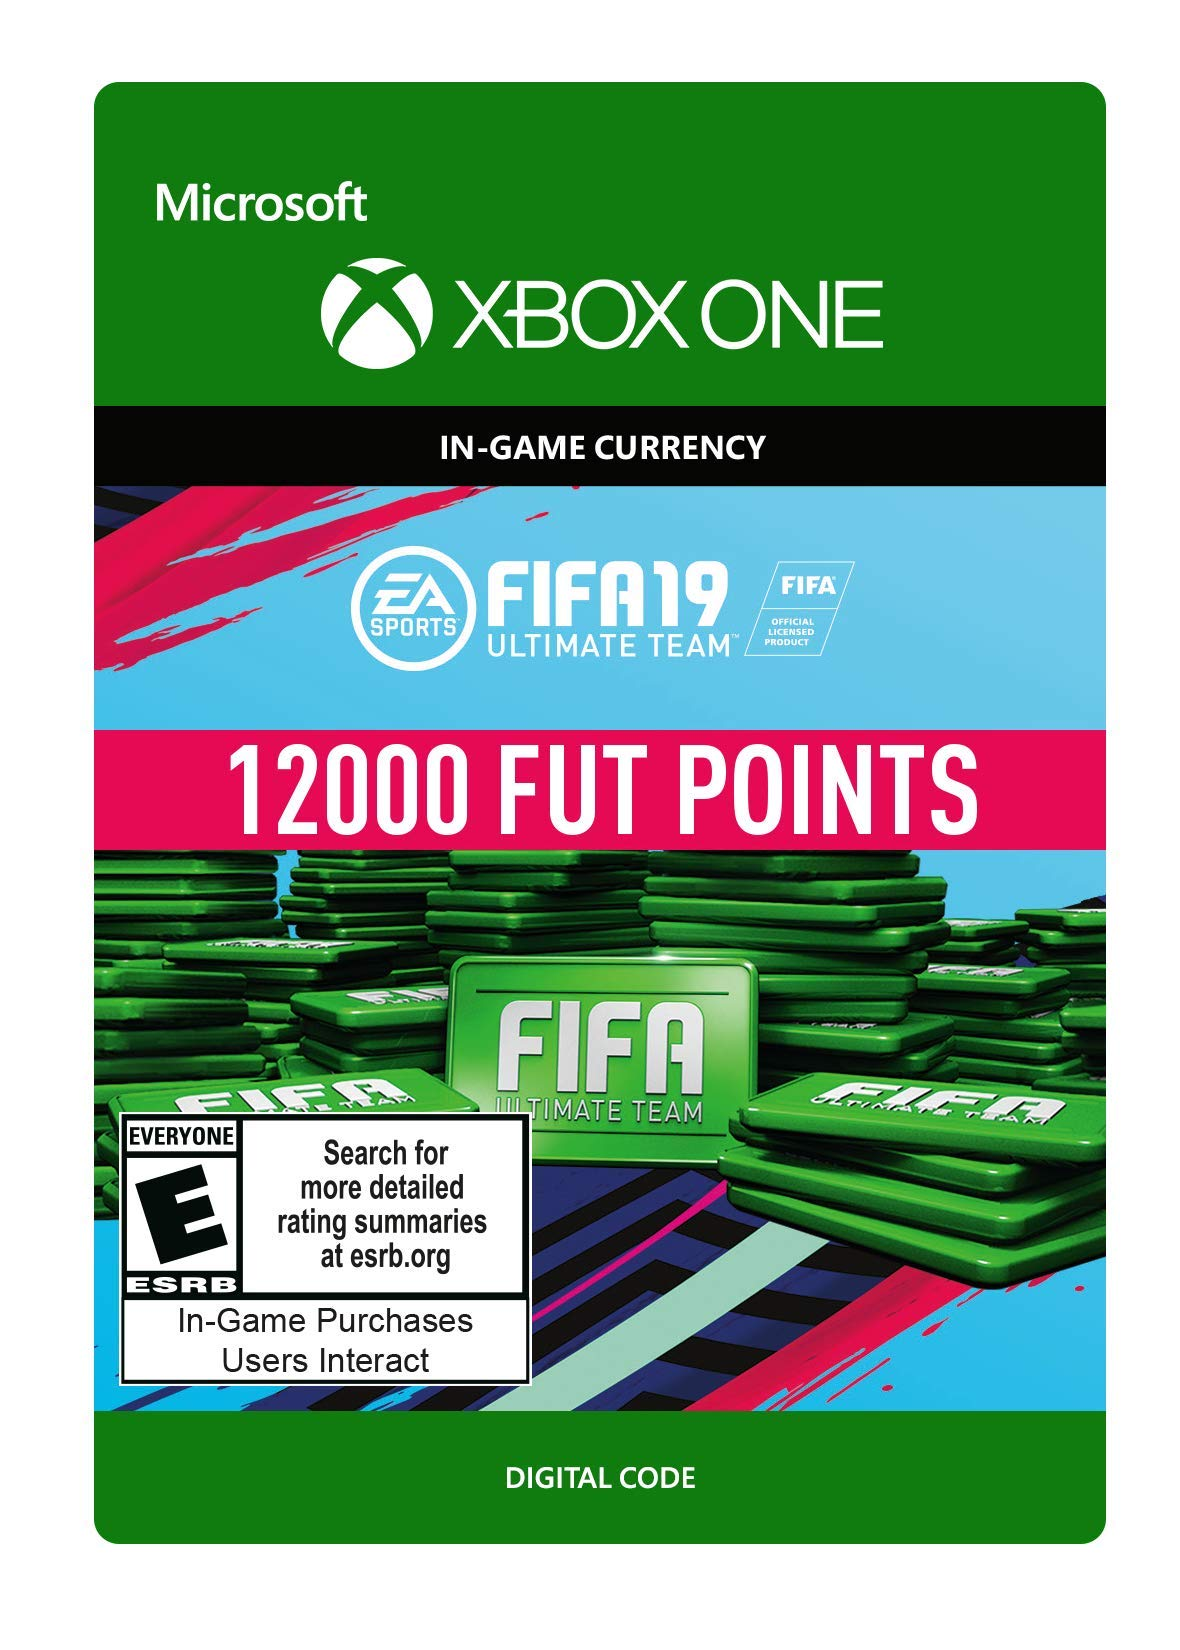 FIFA 19: ULTIMATE TEAM FIFA POINTS 12000 - Xbox One [Digital Code] by Electronic Arts (Image #1)